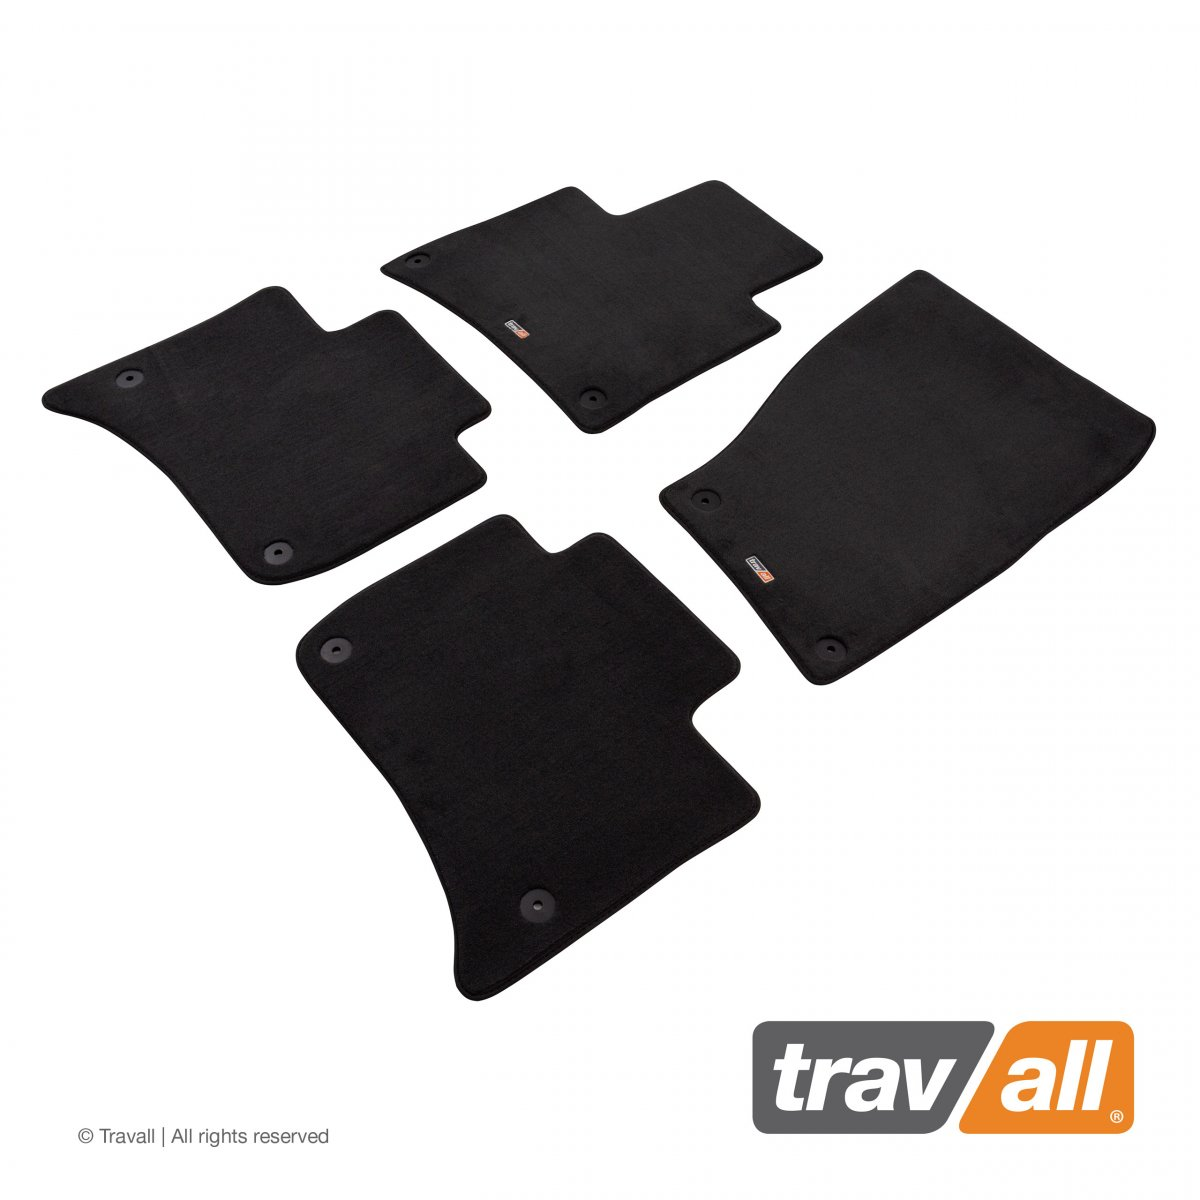 Travall® MATS [LHD] for Volkswagen Touareg (2010 - 2014)